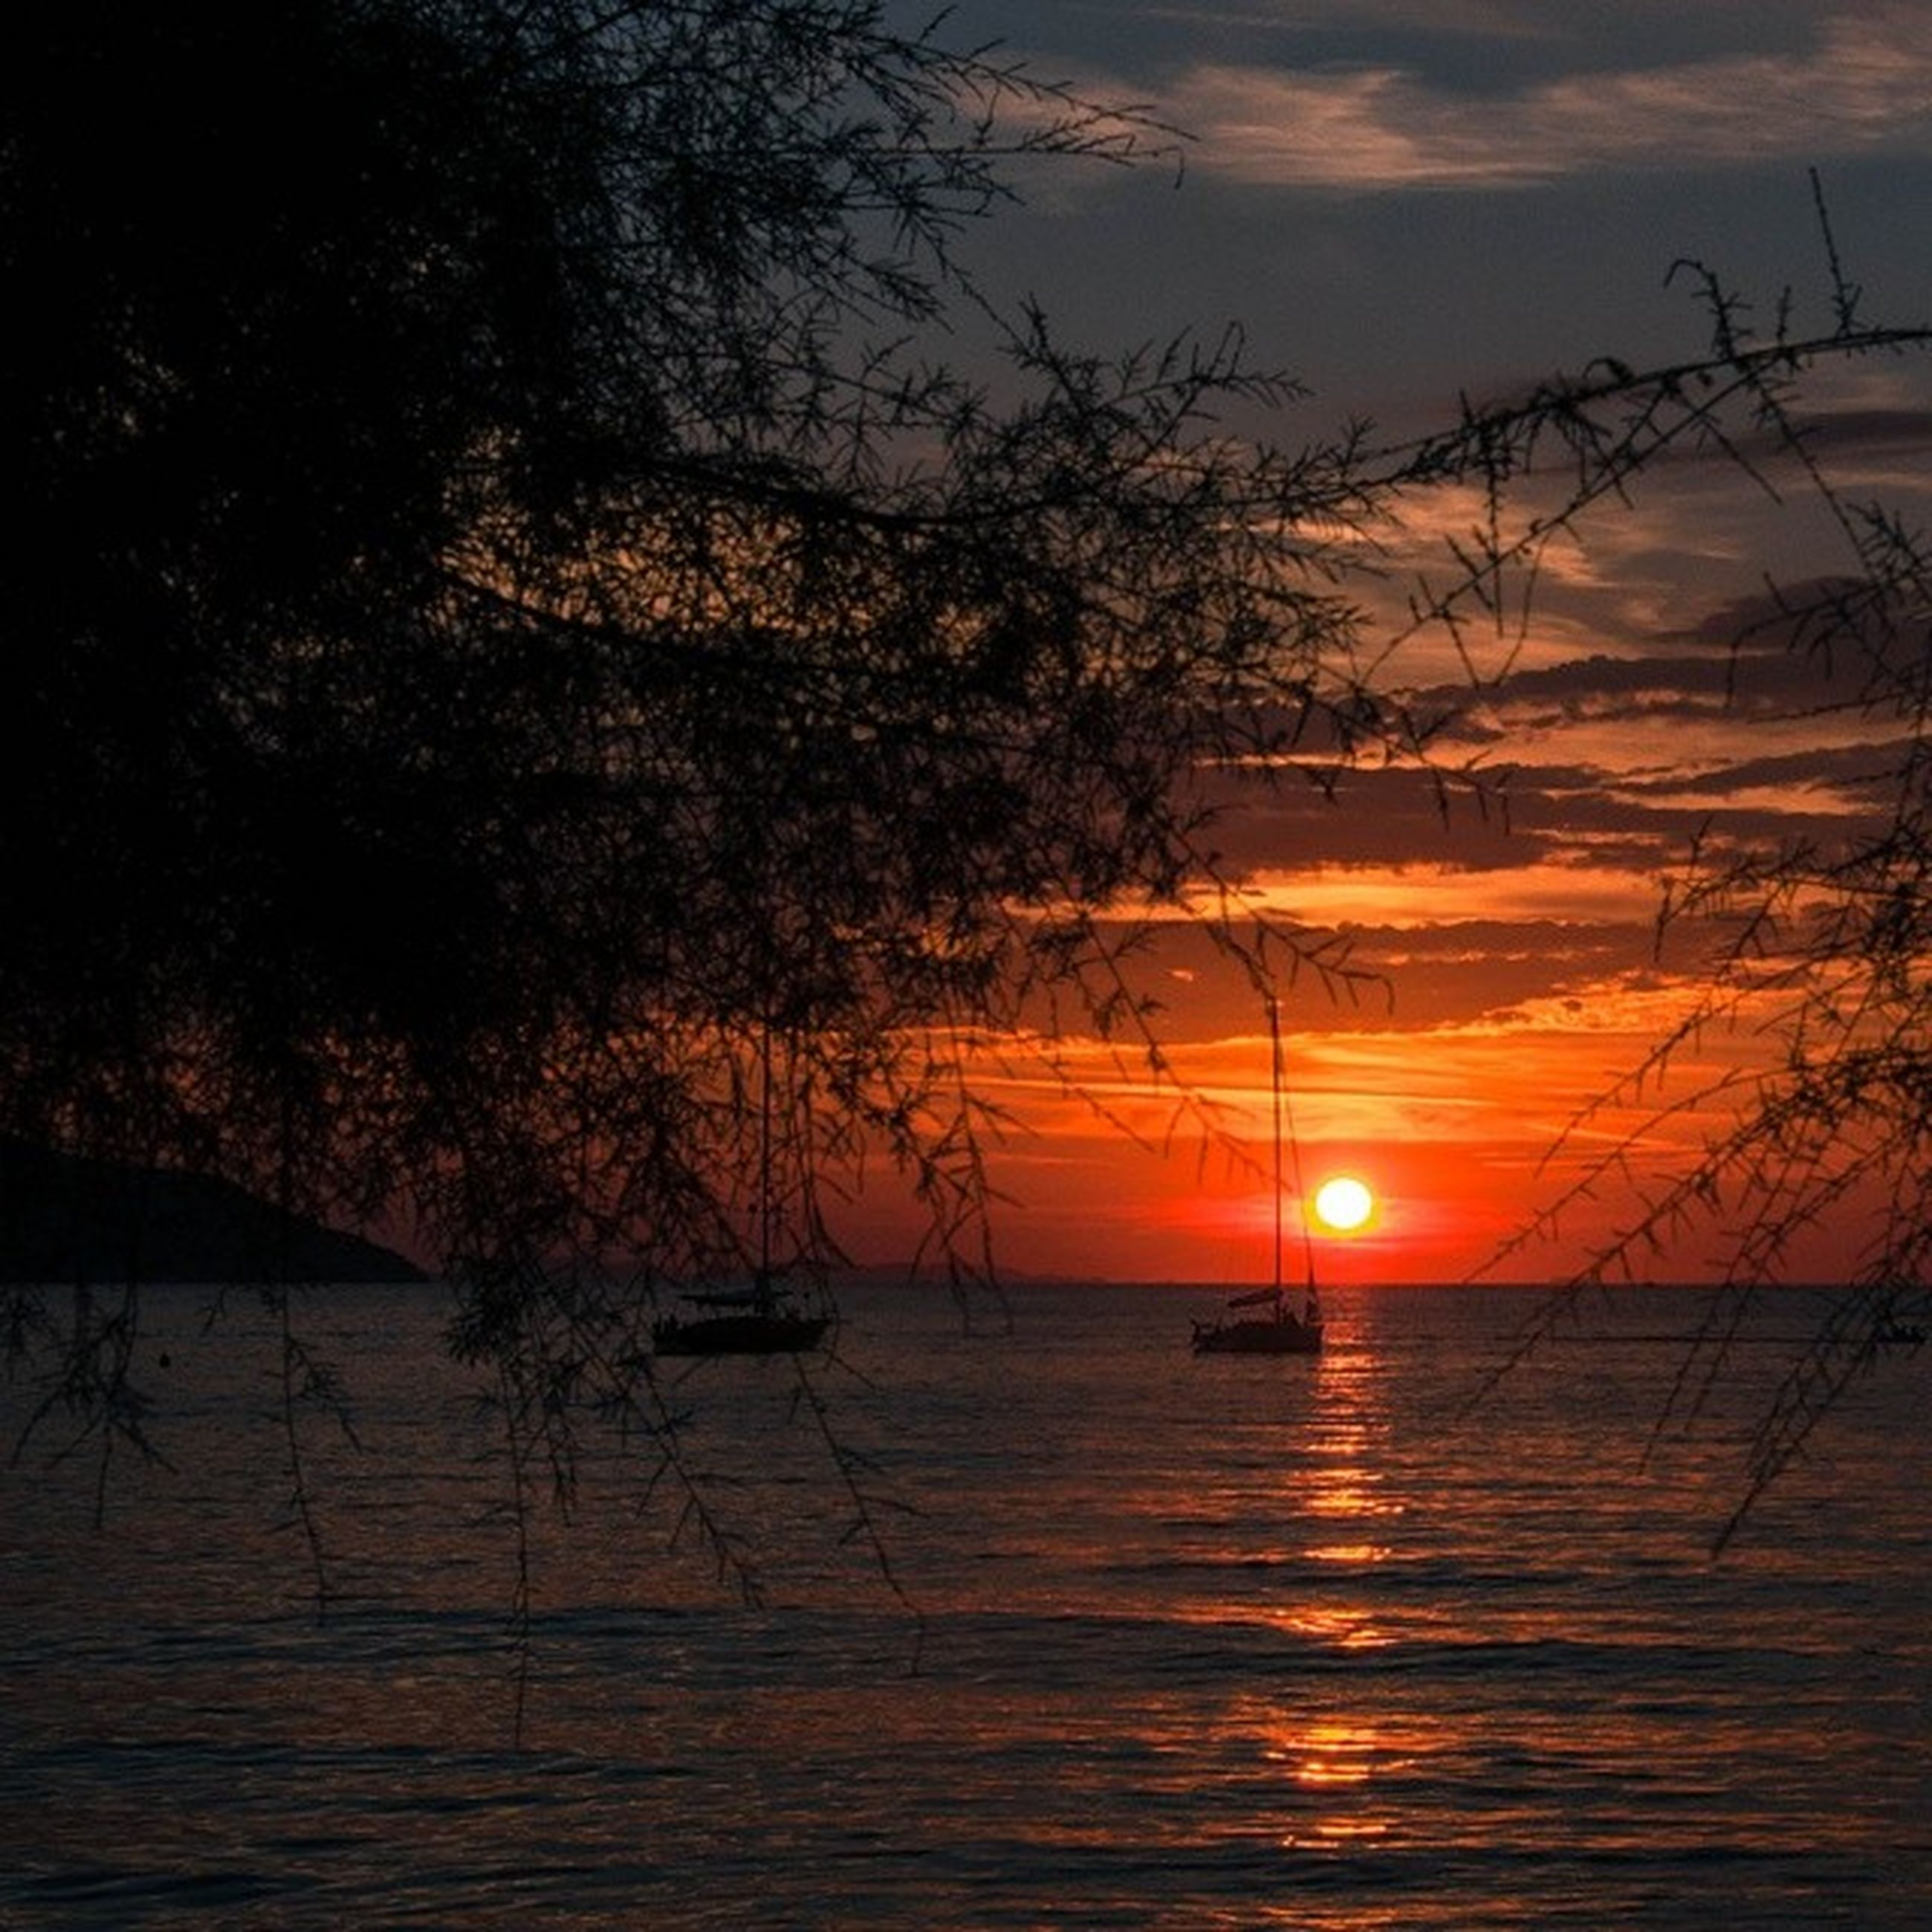 sunset, sun, water, tranquil scene, tranquility, scenics, orange color, beauty in nature, reflection, sky, silhouette, tree, nature, idyllic, lake, waterfront, sunlight, rippled, outdoors, no people